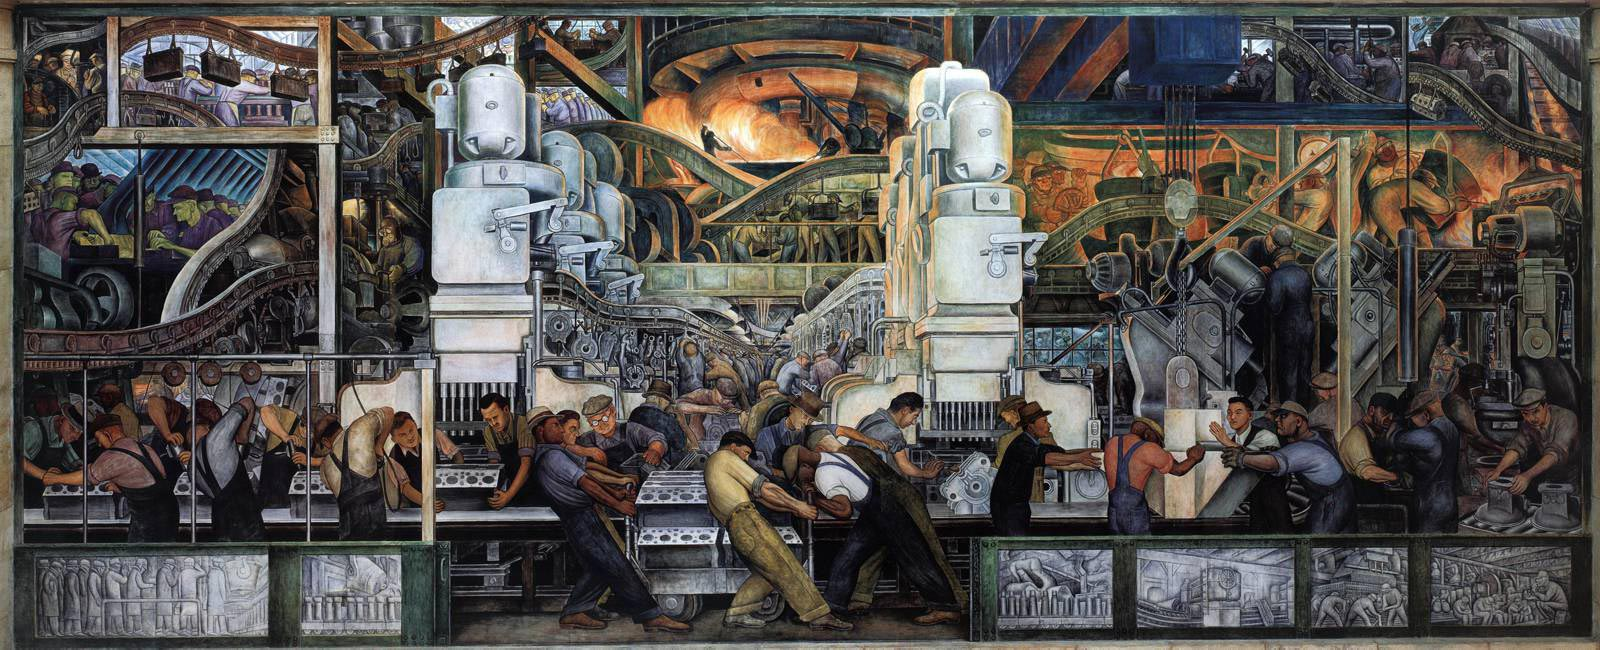 Diego Rivera. Los murales ilustrados de Detroit, 	Detroit Institute of Arts, 1933.